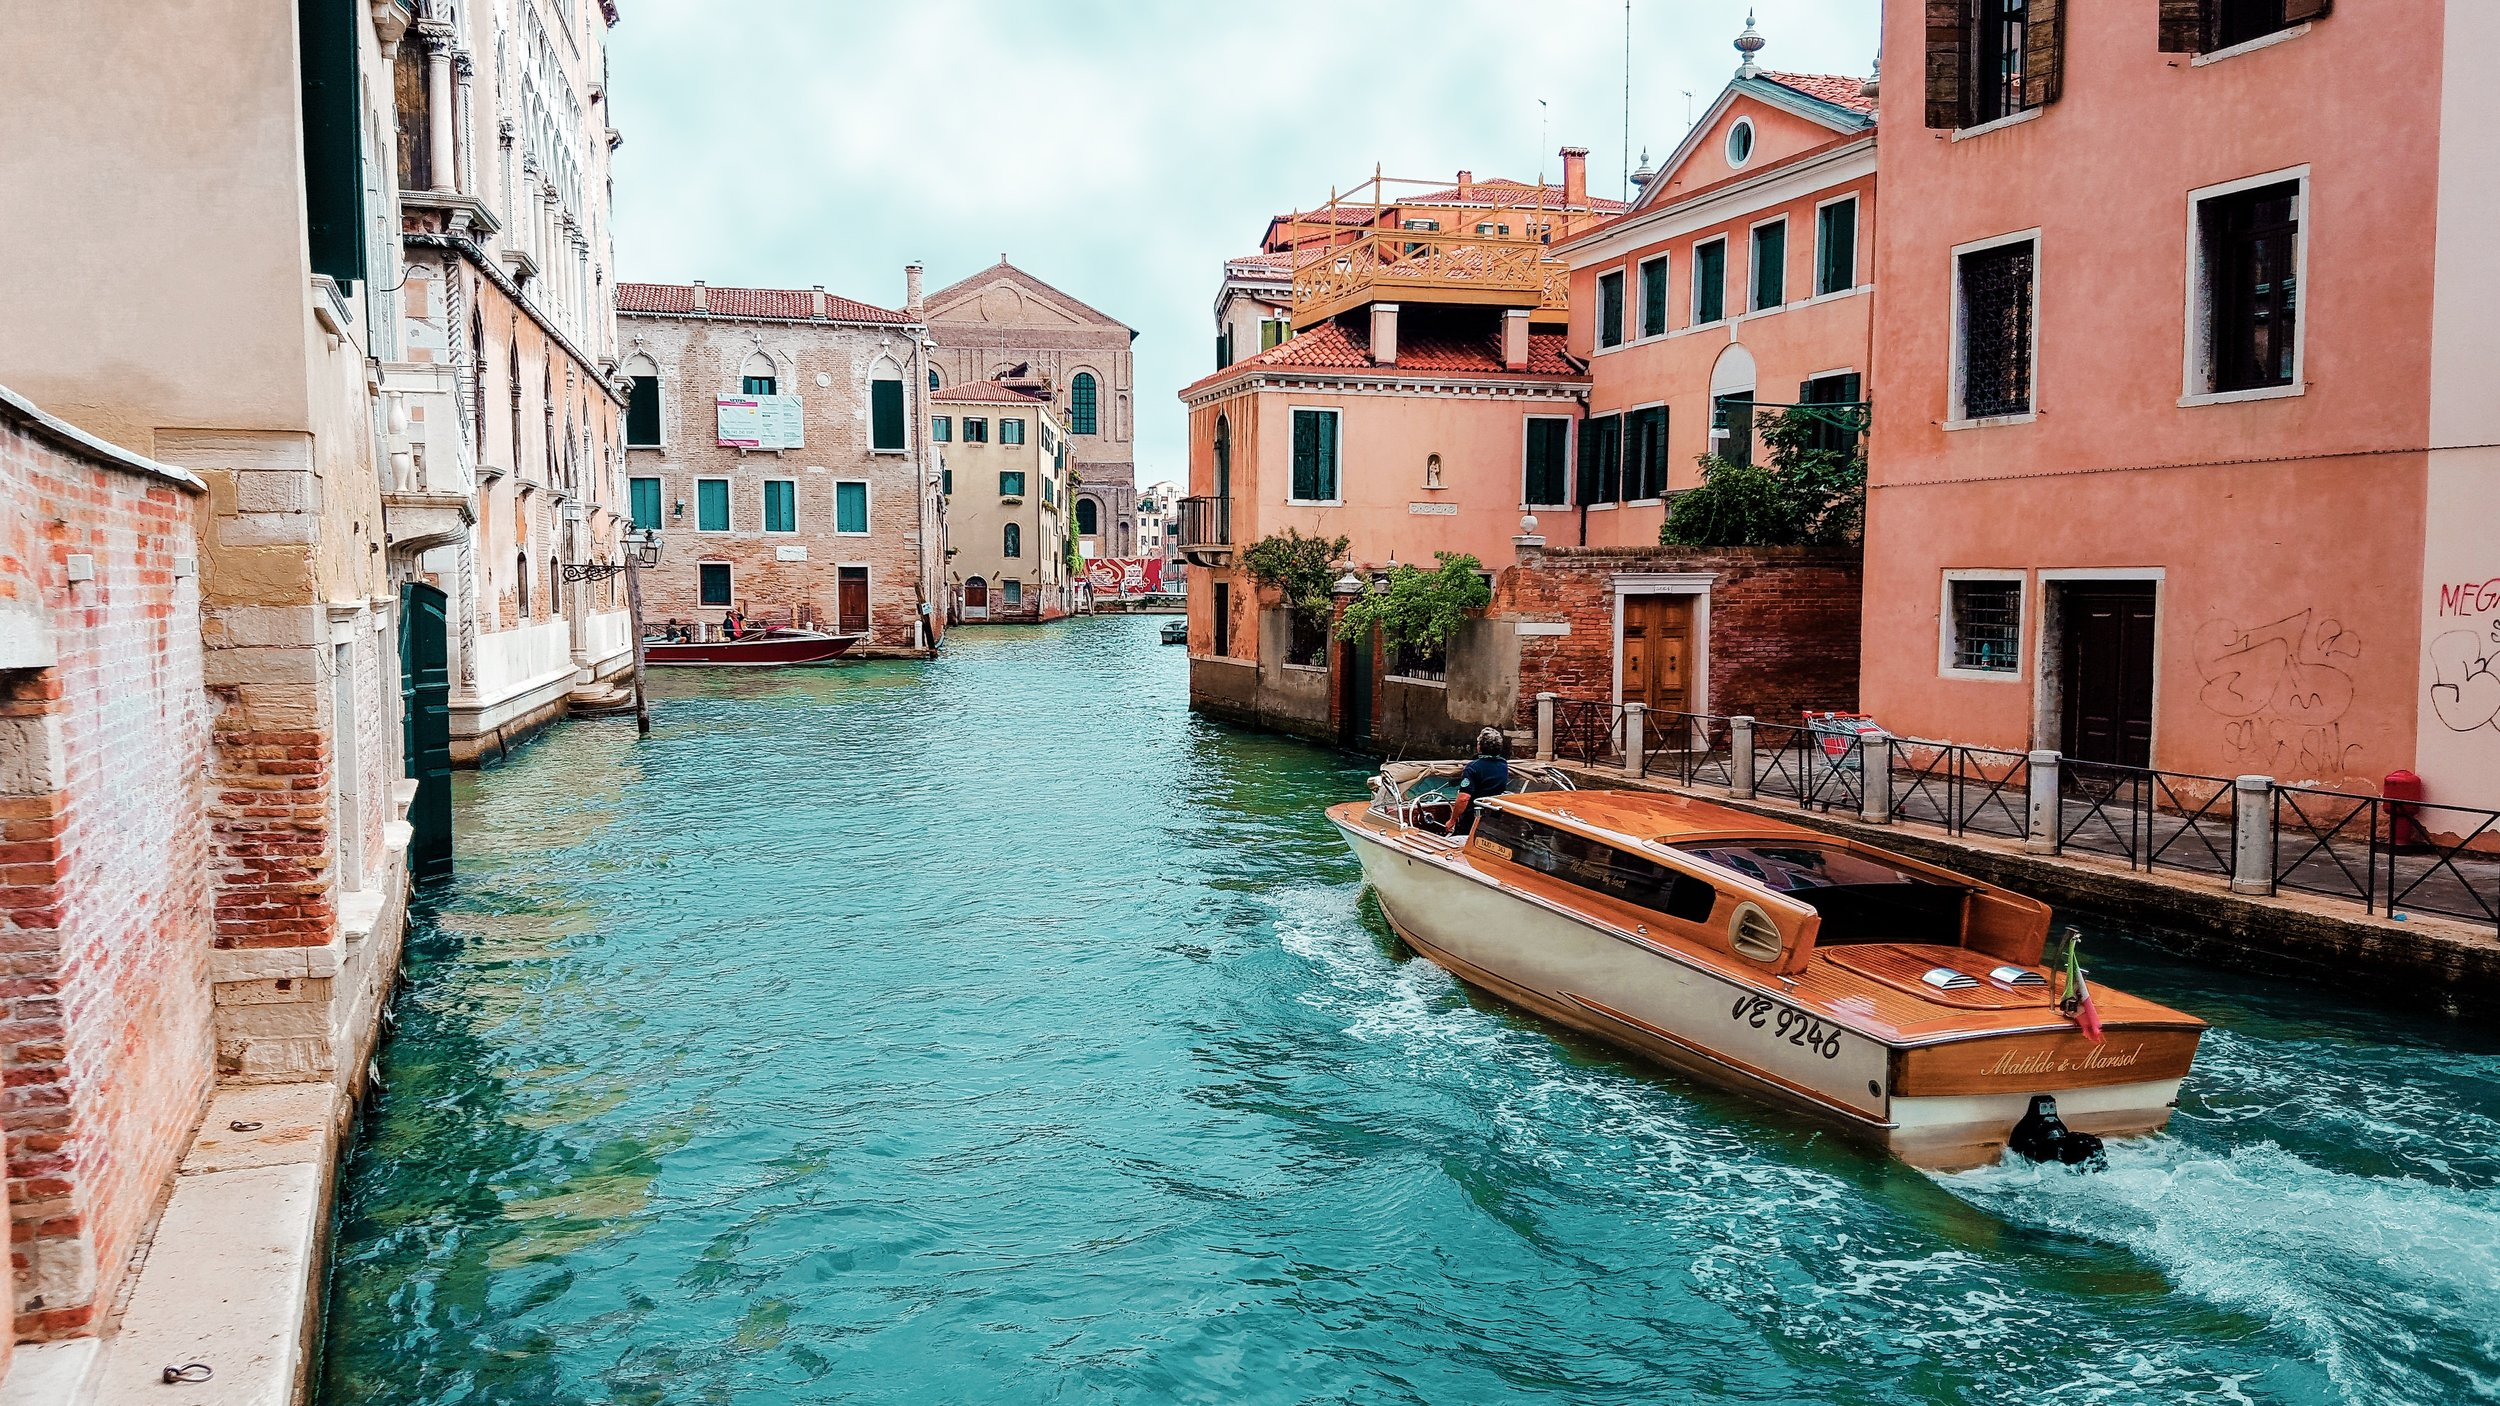 architecture-boat-buildings-208701.jpg